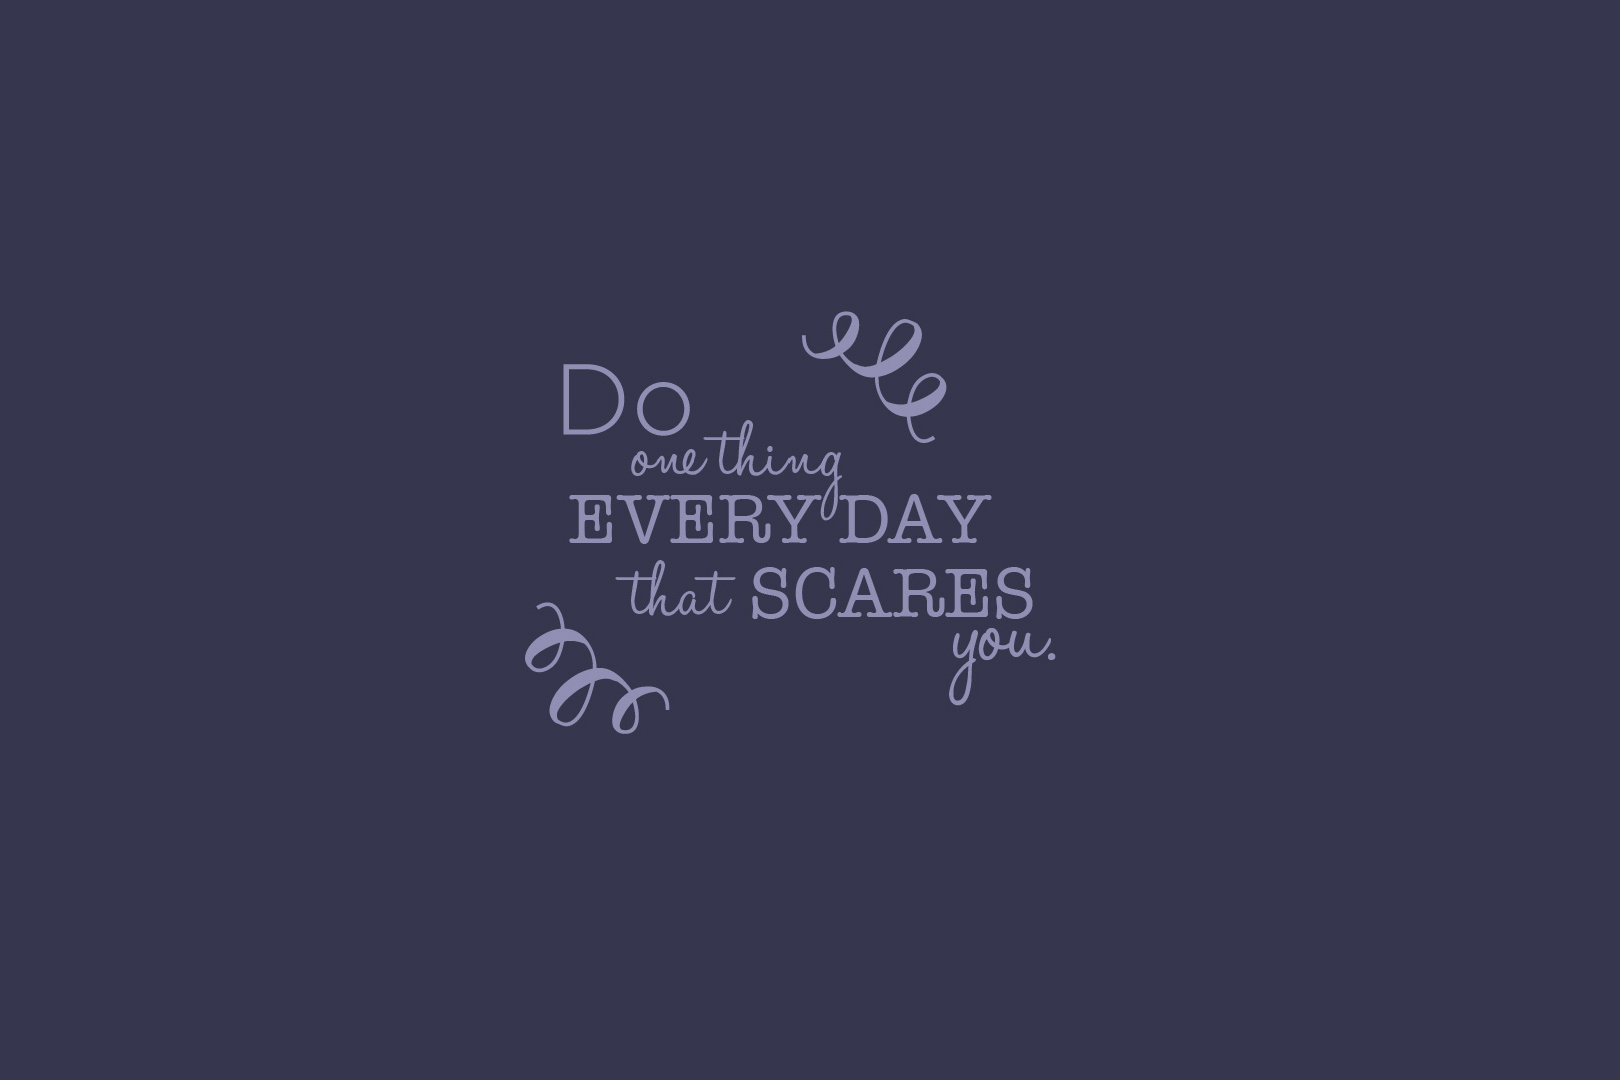 Do Anything Everyday Citatplakat